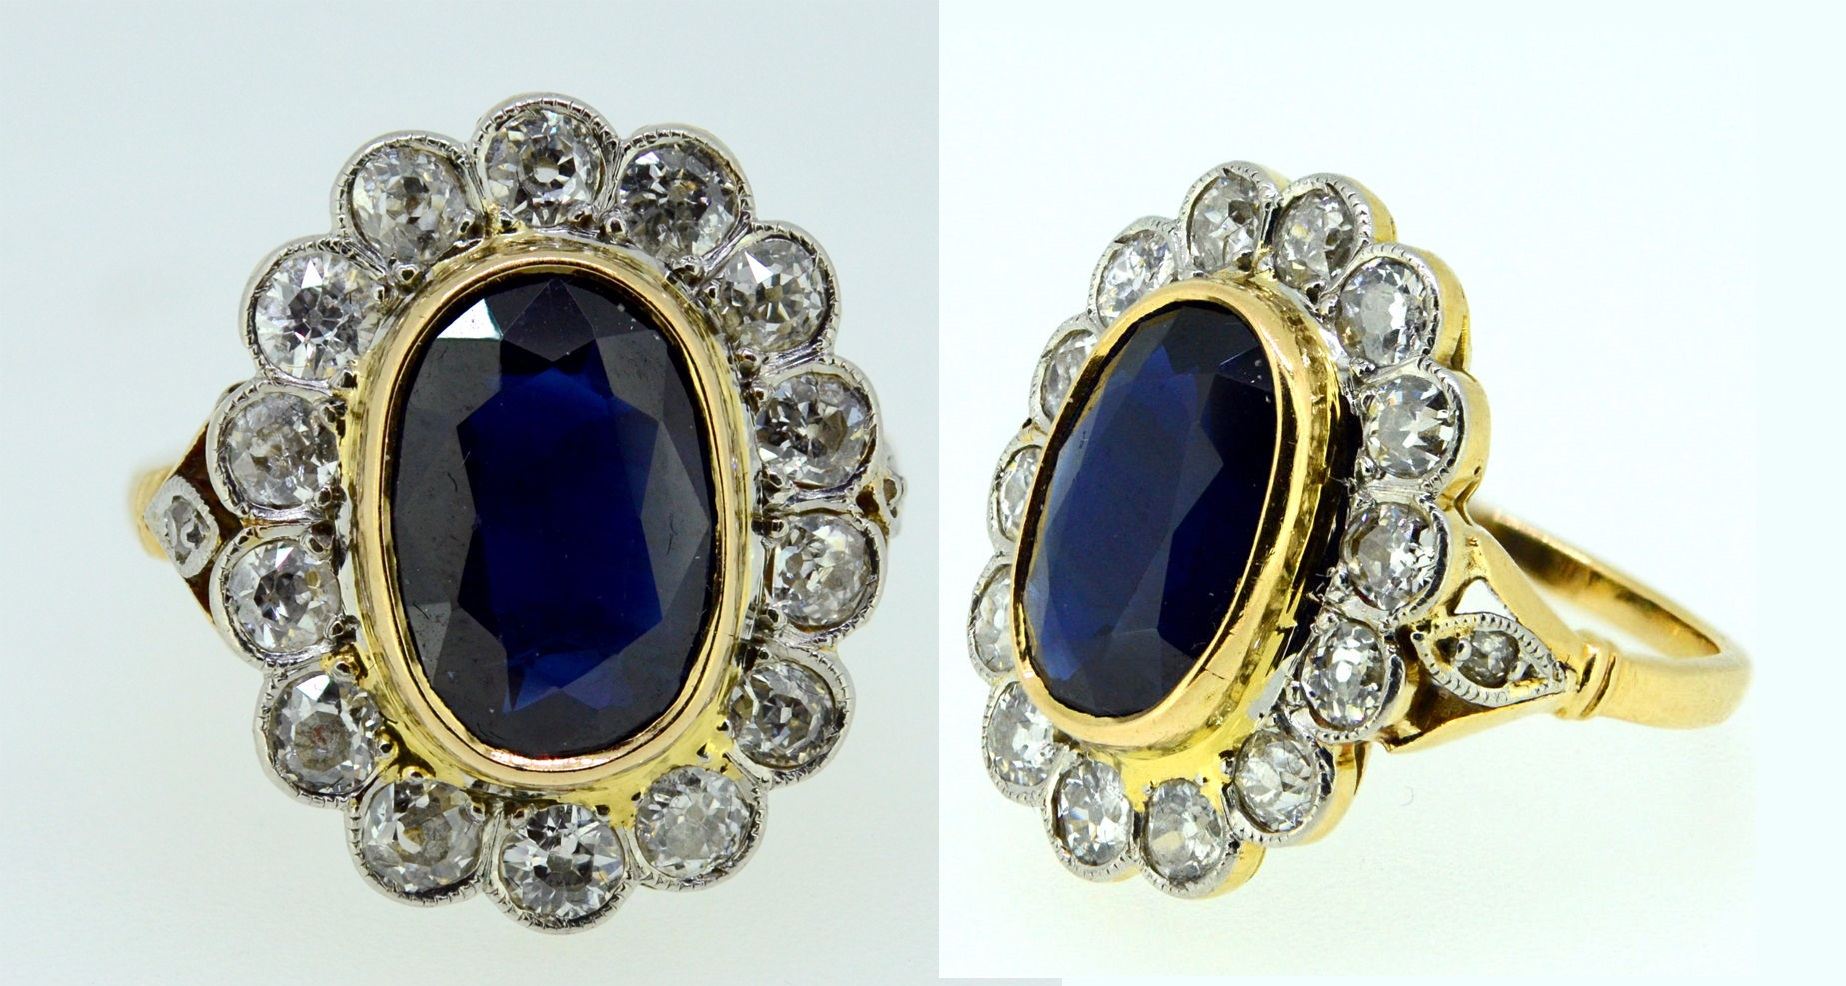 Antique Victorian 2.50Ct Burma Sapphire Diamond Cluster Ring 18K Gold